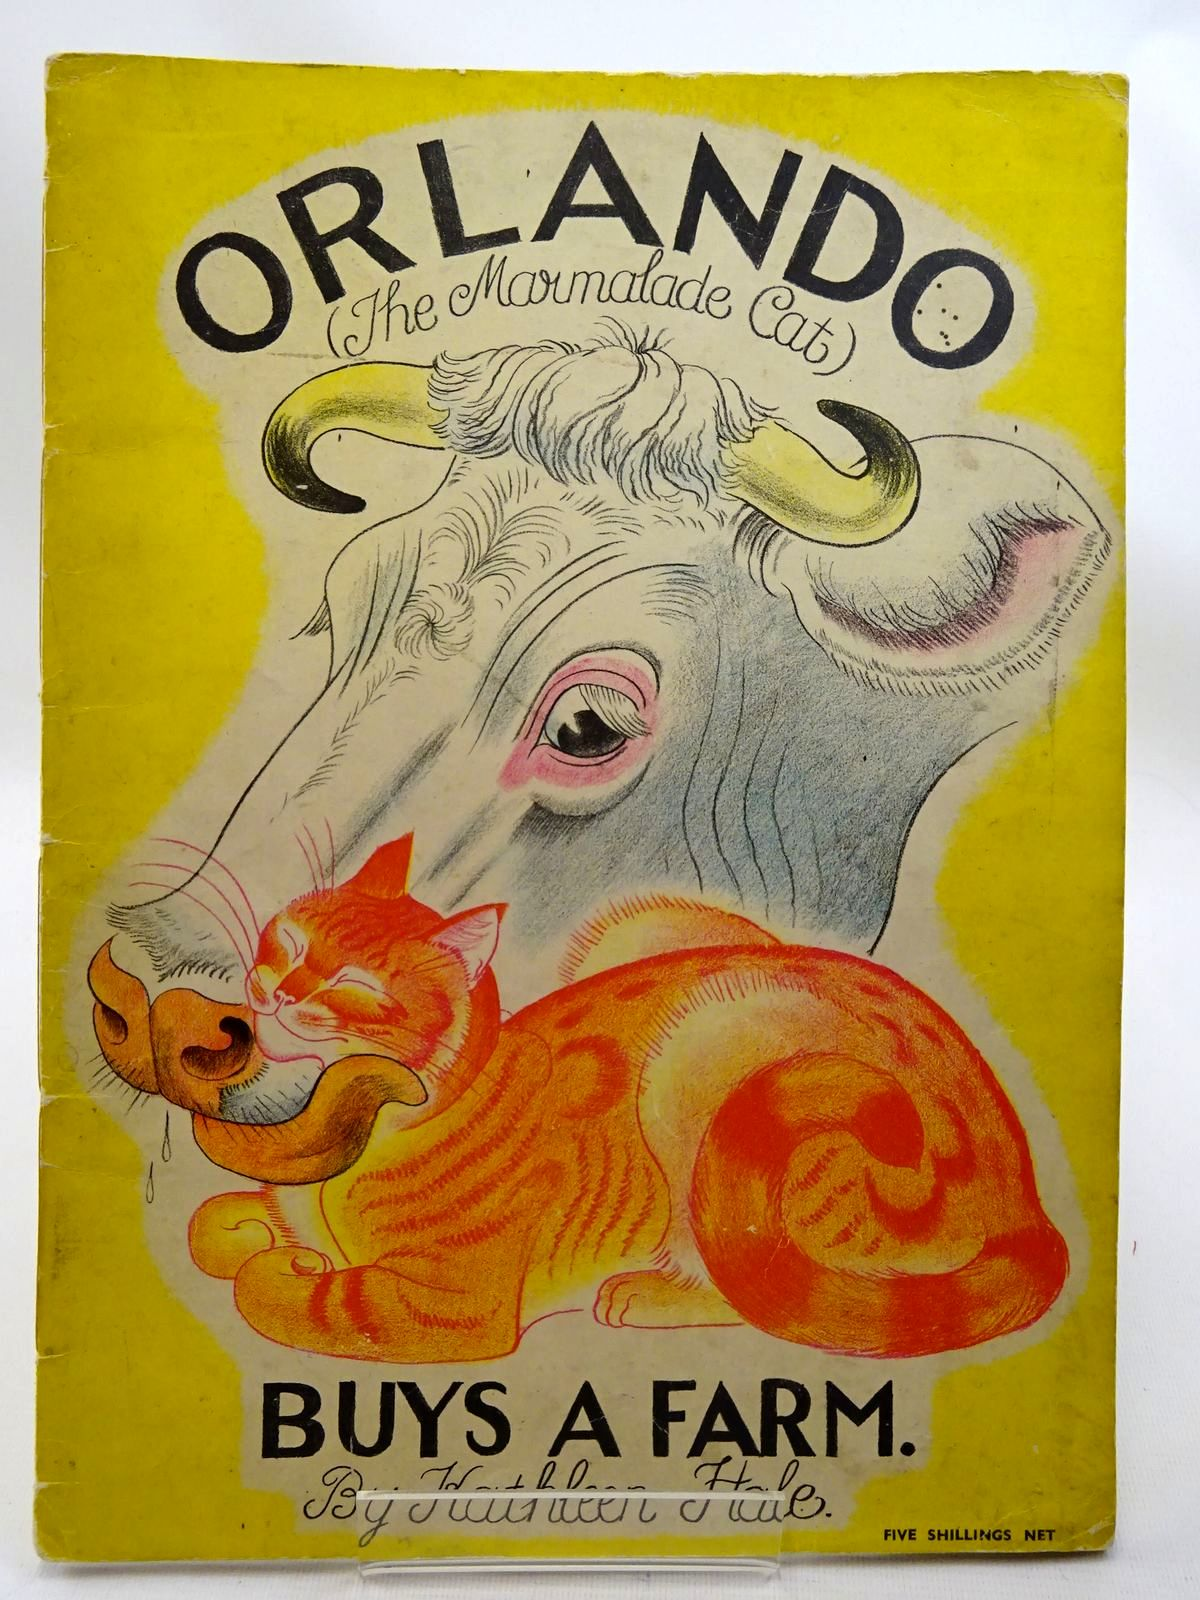 Photo of ORLANDO (THE MARMALADE CAT) BUYS A FARM written by Hale, Kathleen illustrated by Hale, Kathleen published by Country Life (STOCK CODE: 2126004)  for sale by Stella & Rose's Books